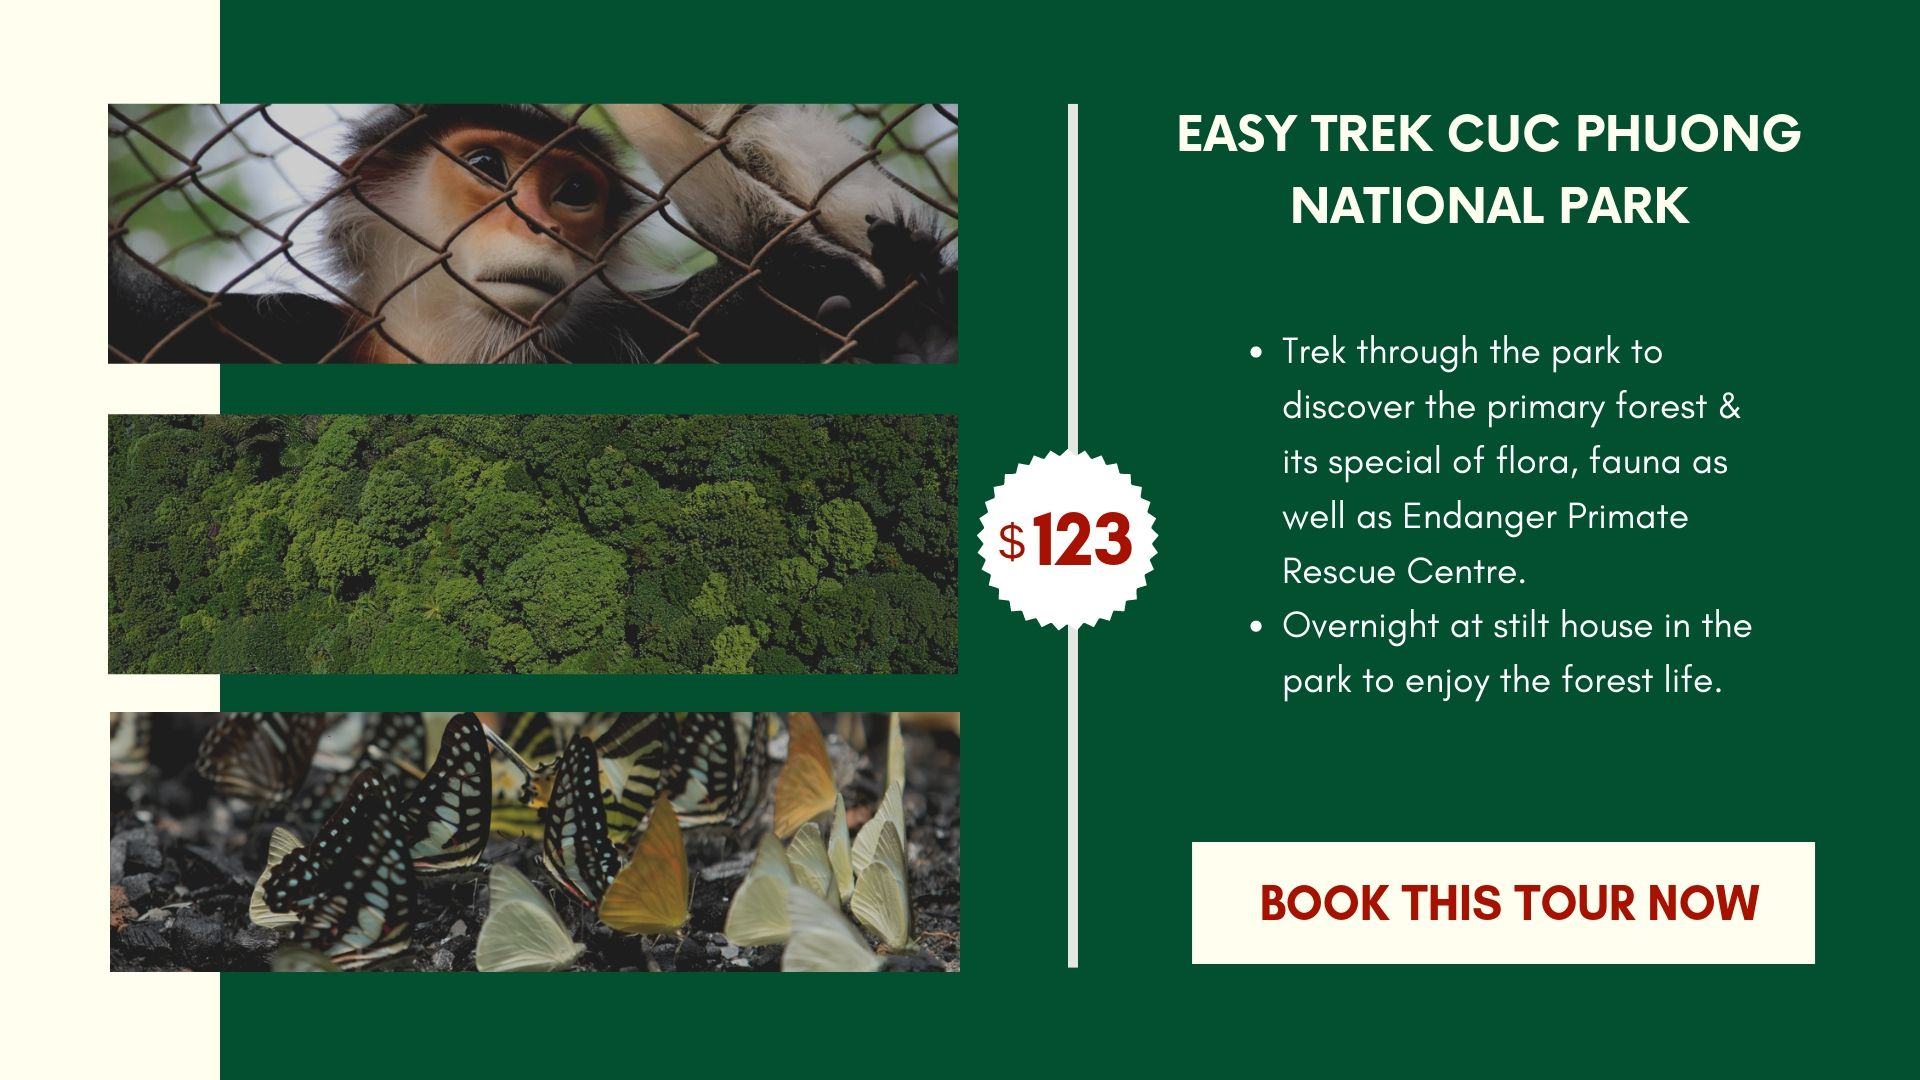 Cuc Phuong National Park Tour - 02 days